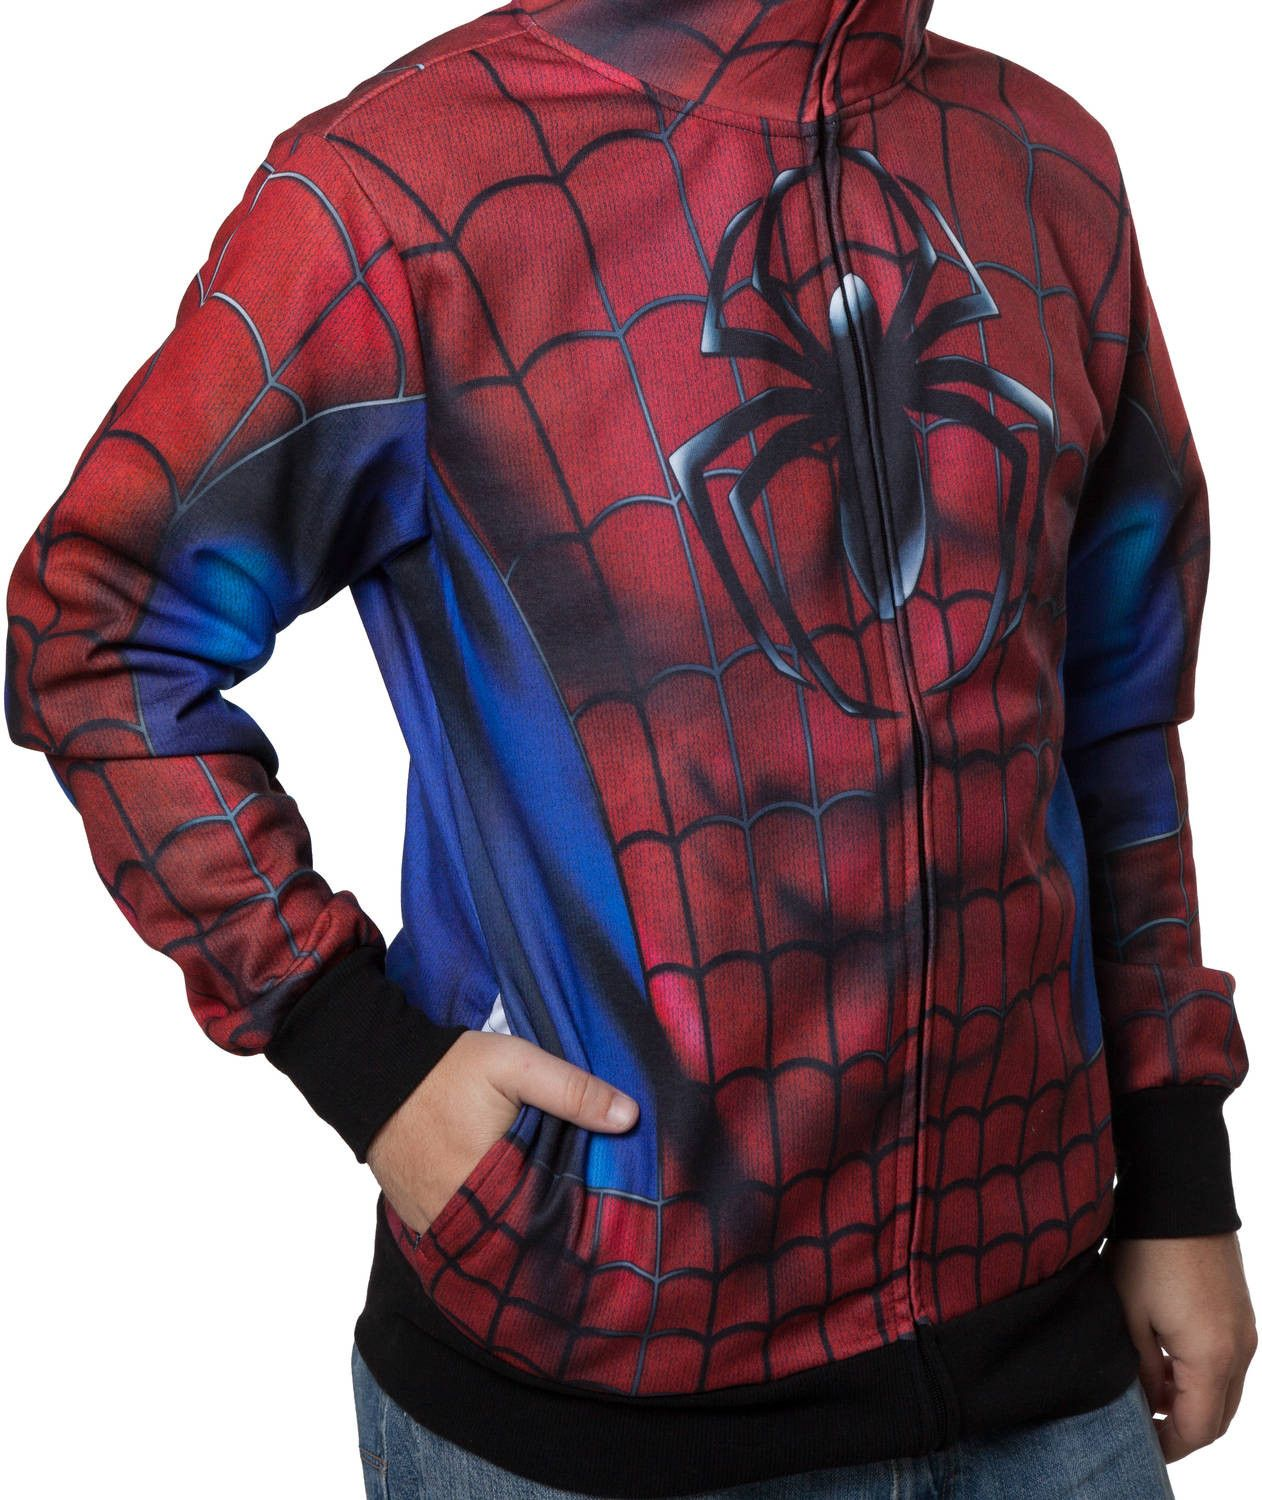 Sublimated Spider Man Costume Hoodie Aesthetic Clothes Spiderman Hoodie Mens Costumes [ 1500 x 1262 Pixel ]